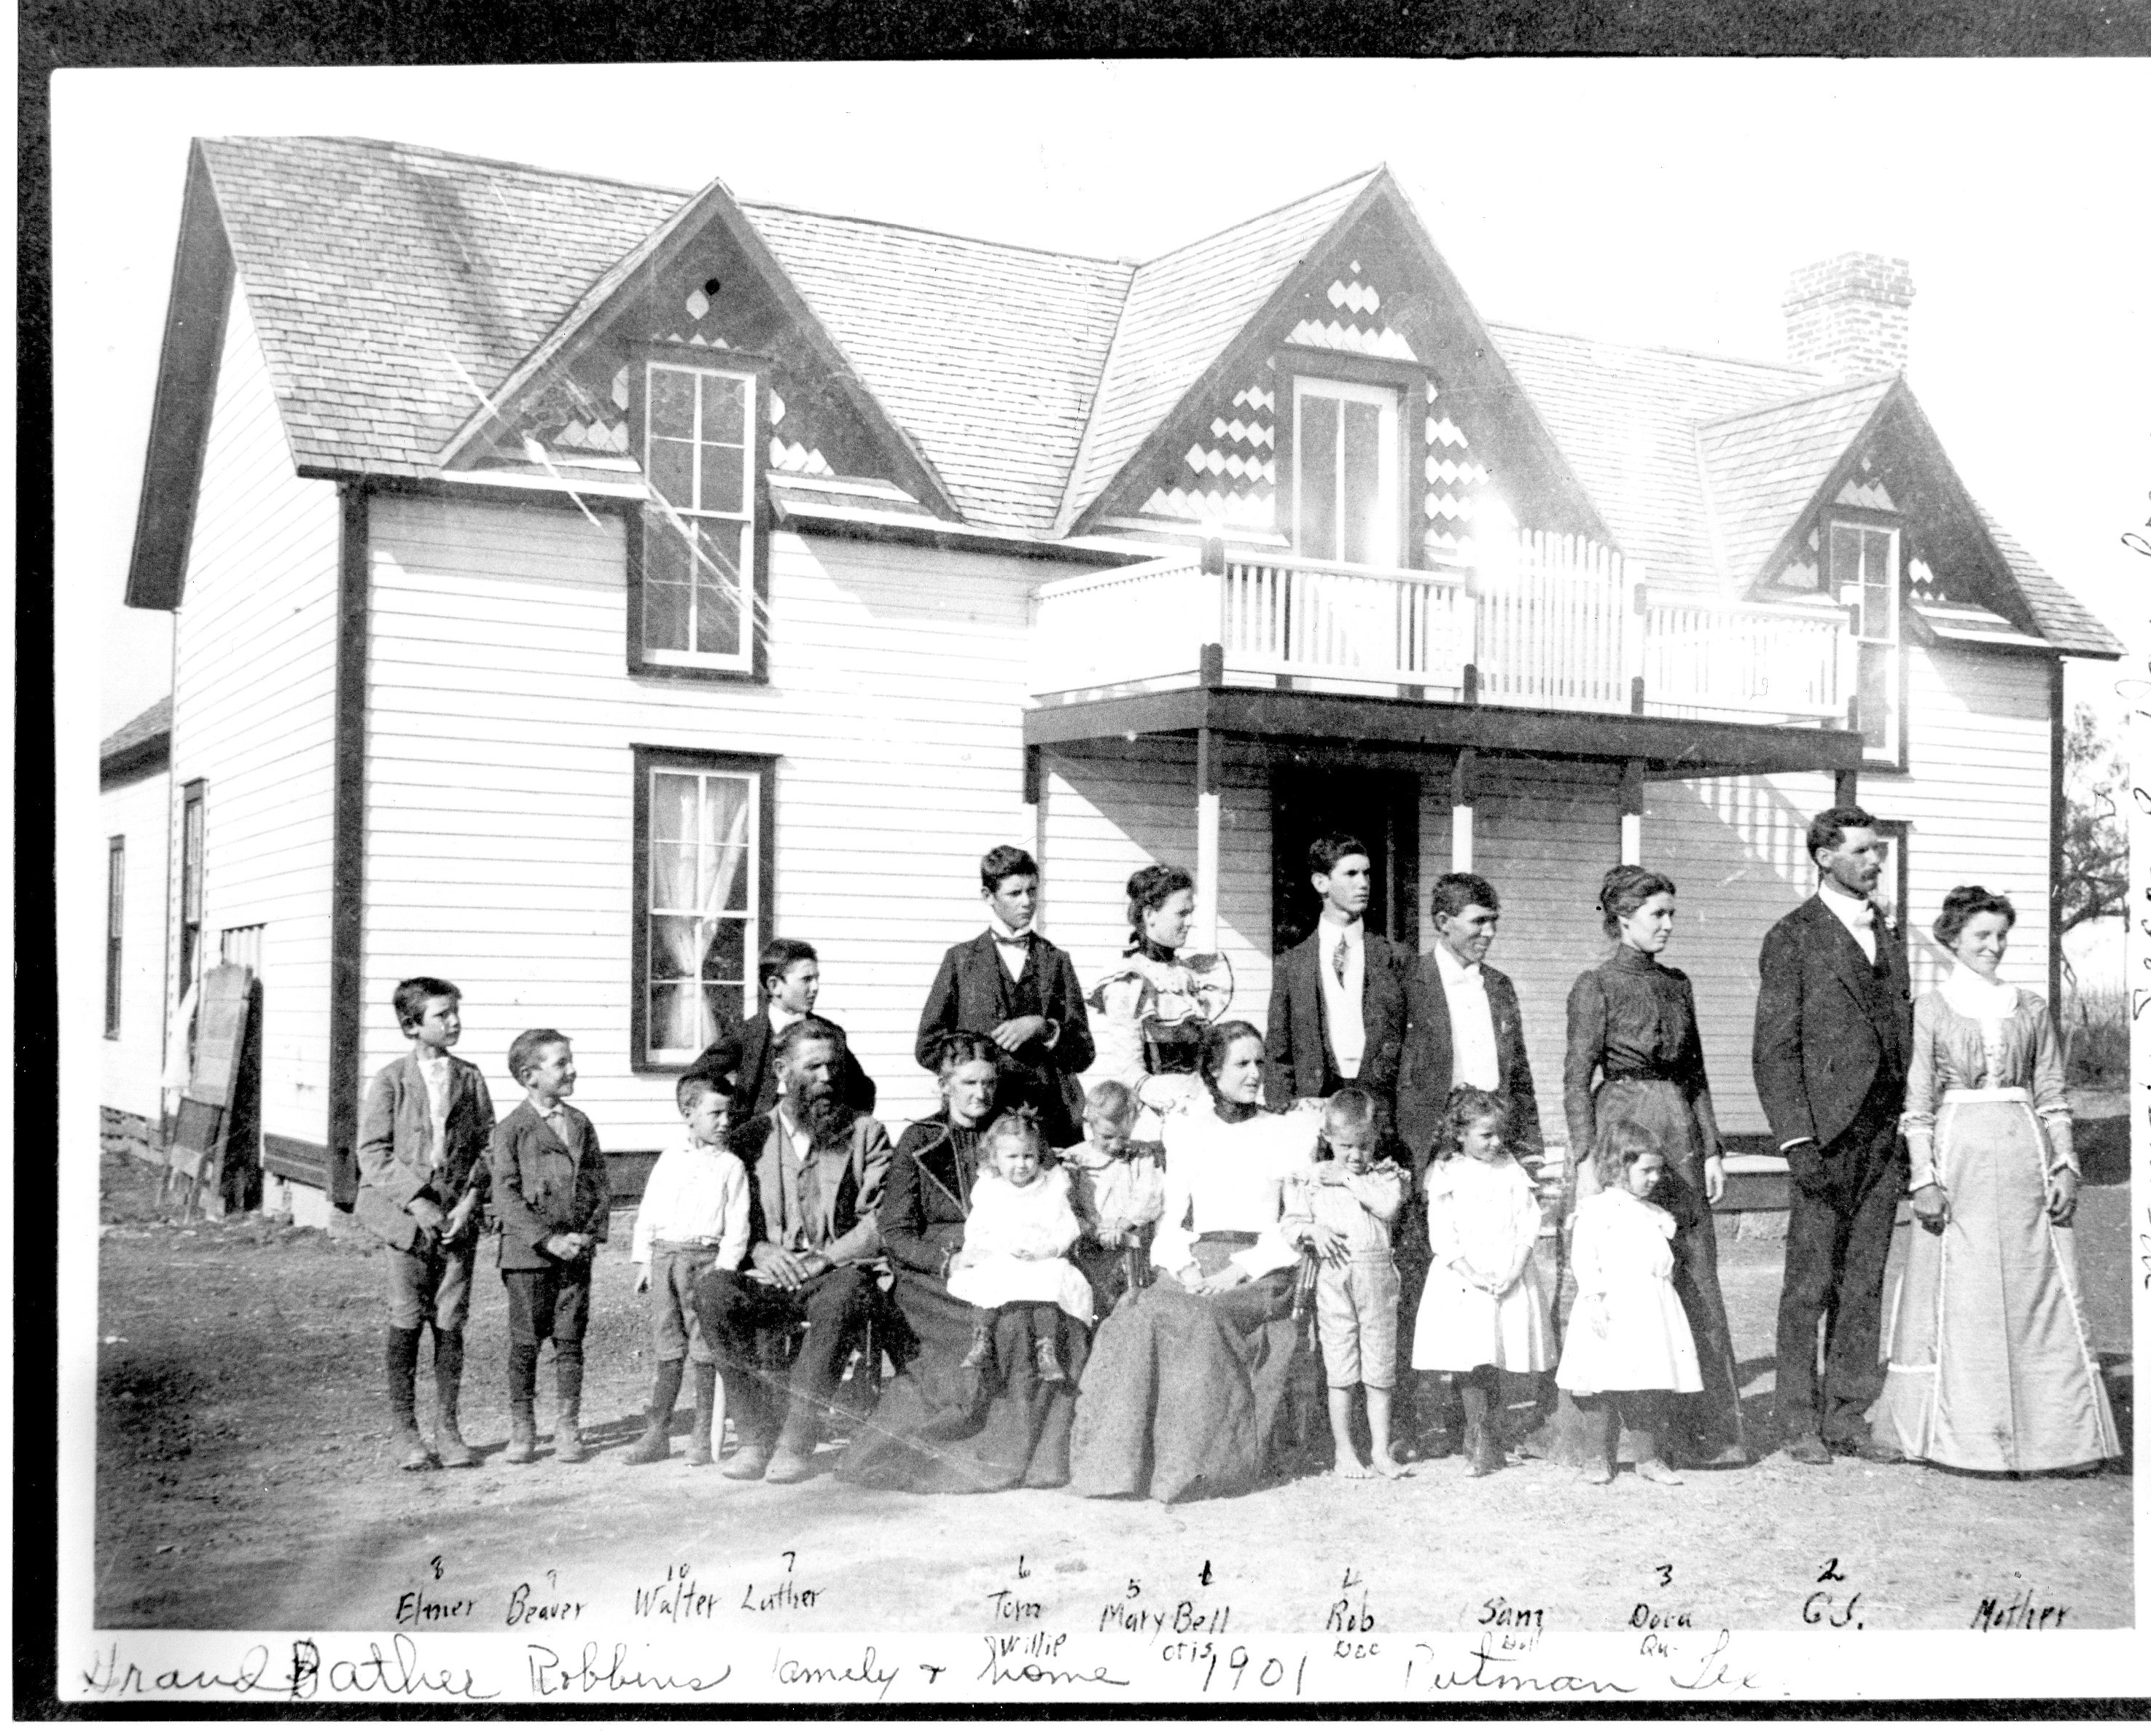 William Arthur Robbins and Mary Francis Bishop and family, 1901 in Putnam, TX.